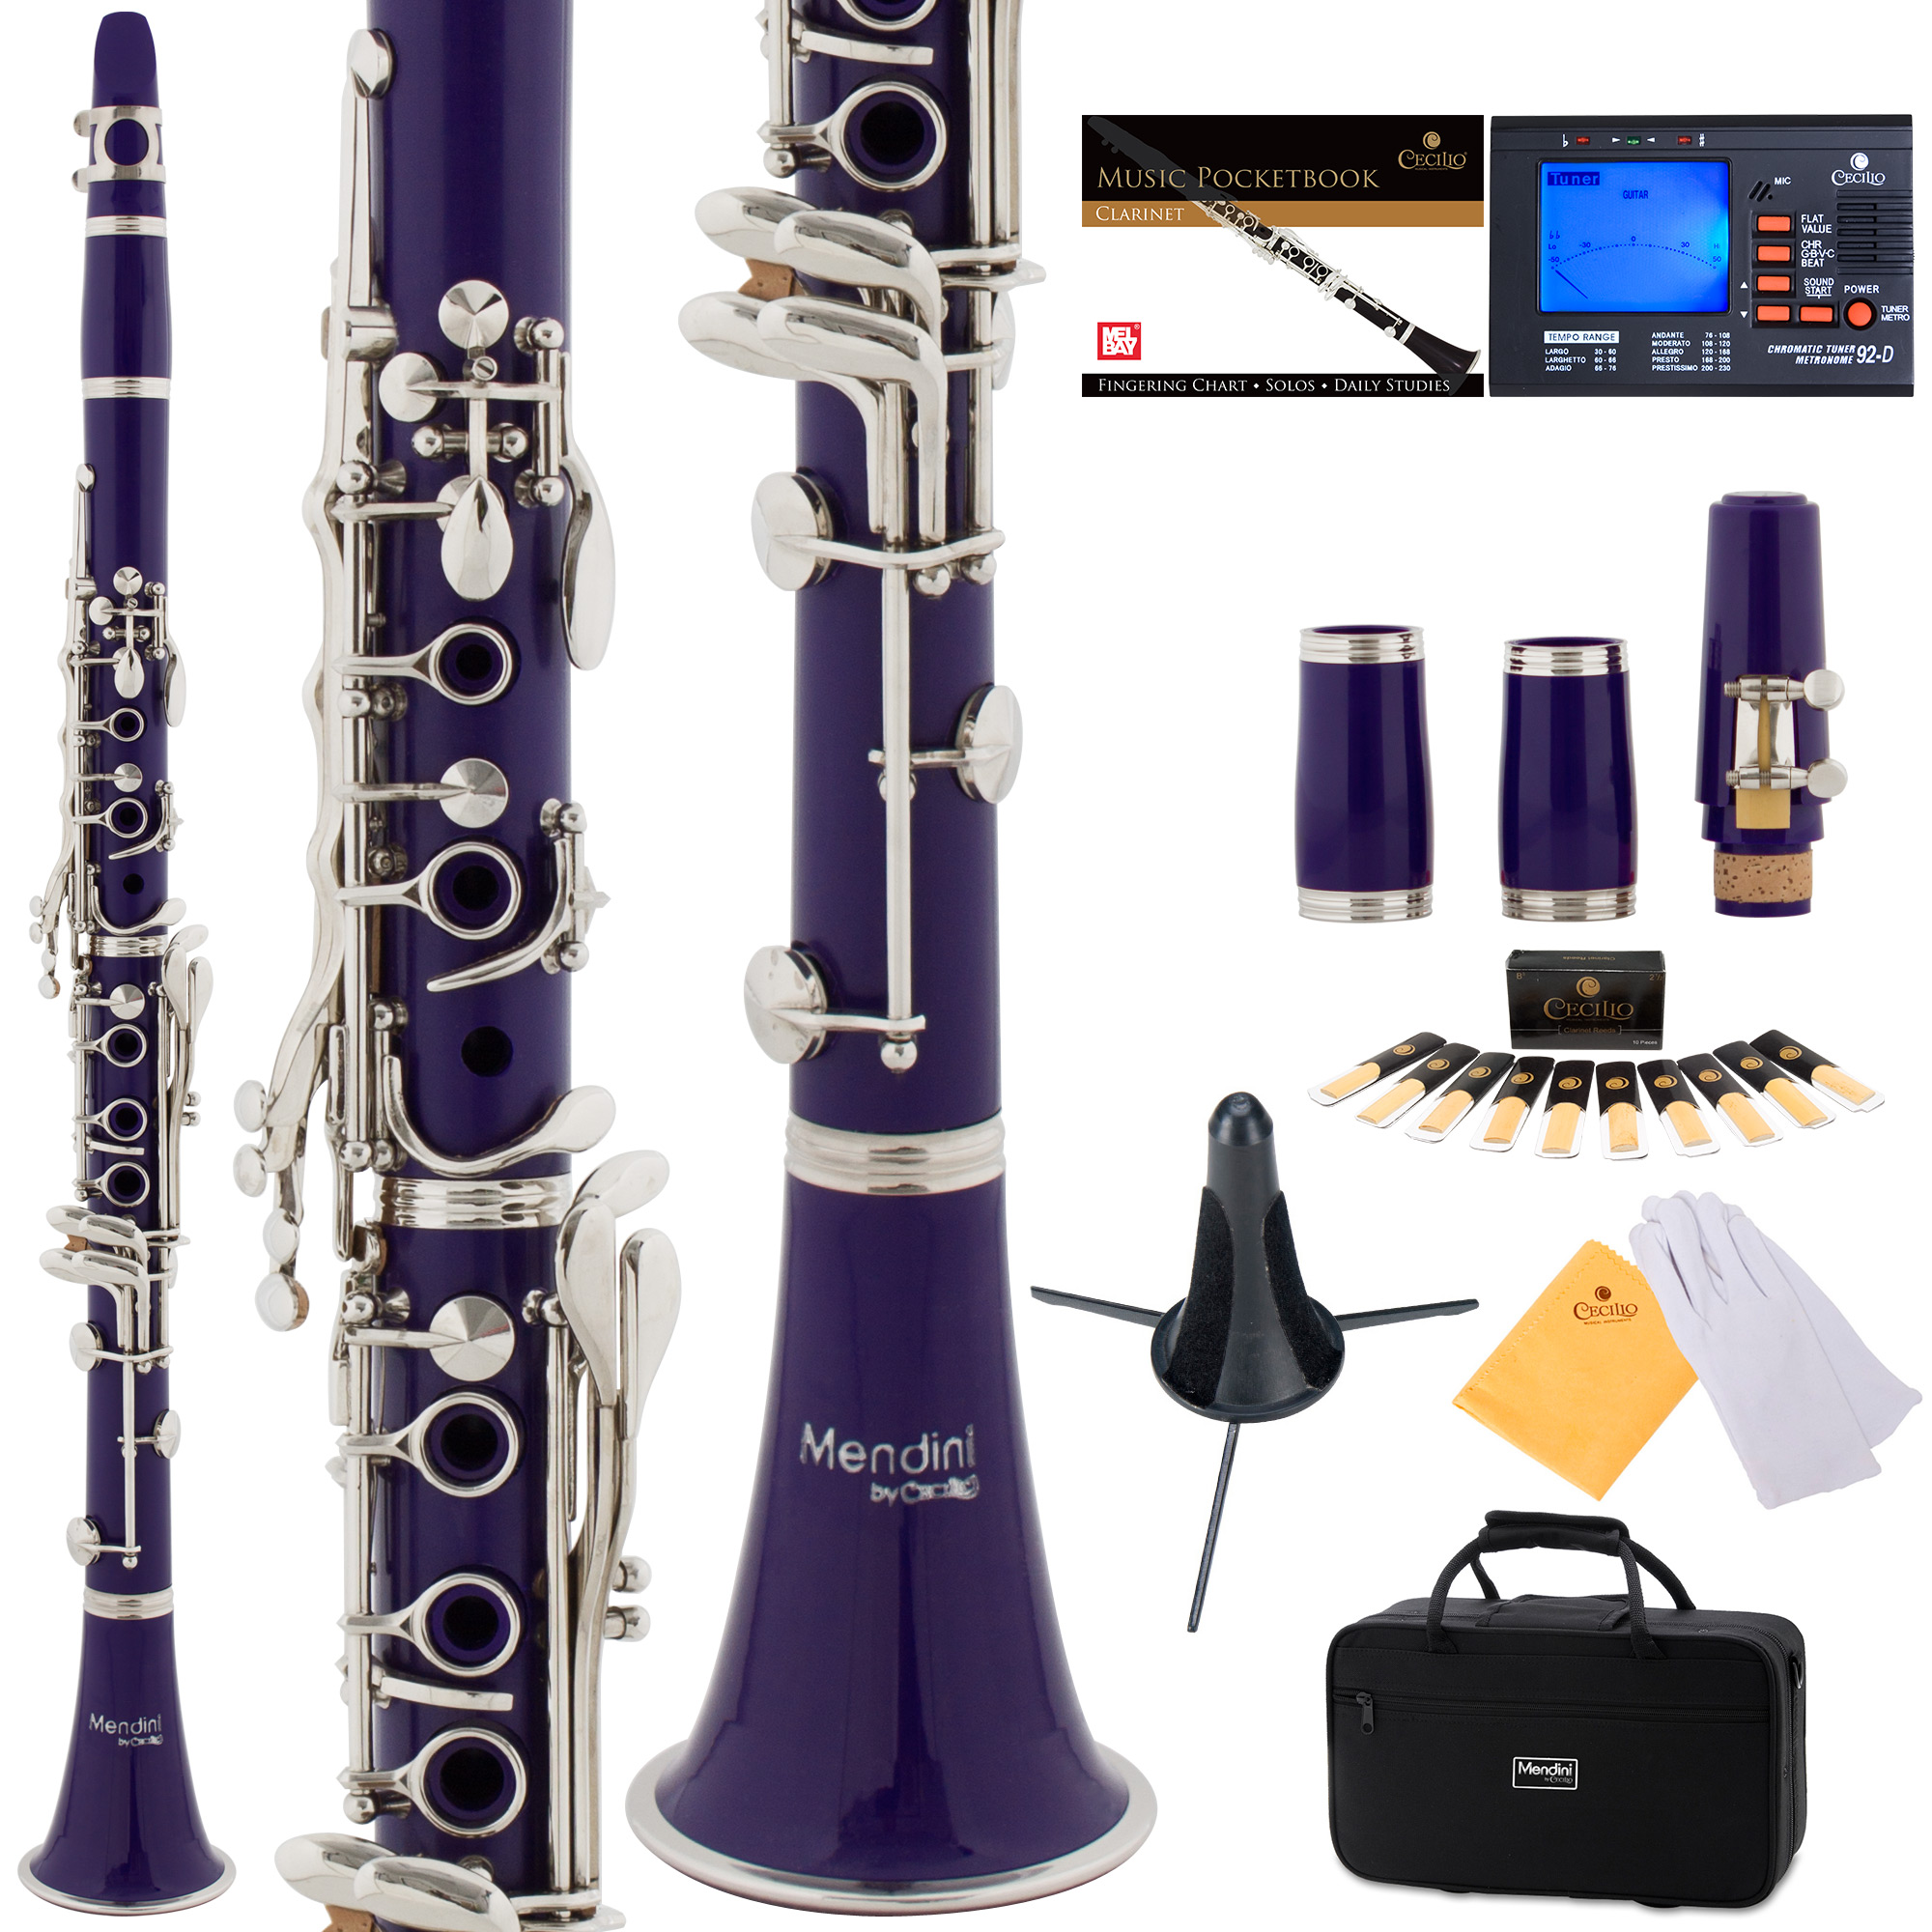 Mendini by Cecilio MCT-2P Purple ABS Bb Clarinet w/ 2 Barrels, 1 Year Warranty, Stand, Tuner, 10 Reeds, Pocketbook, Mouthpiece, Case, B Flat